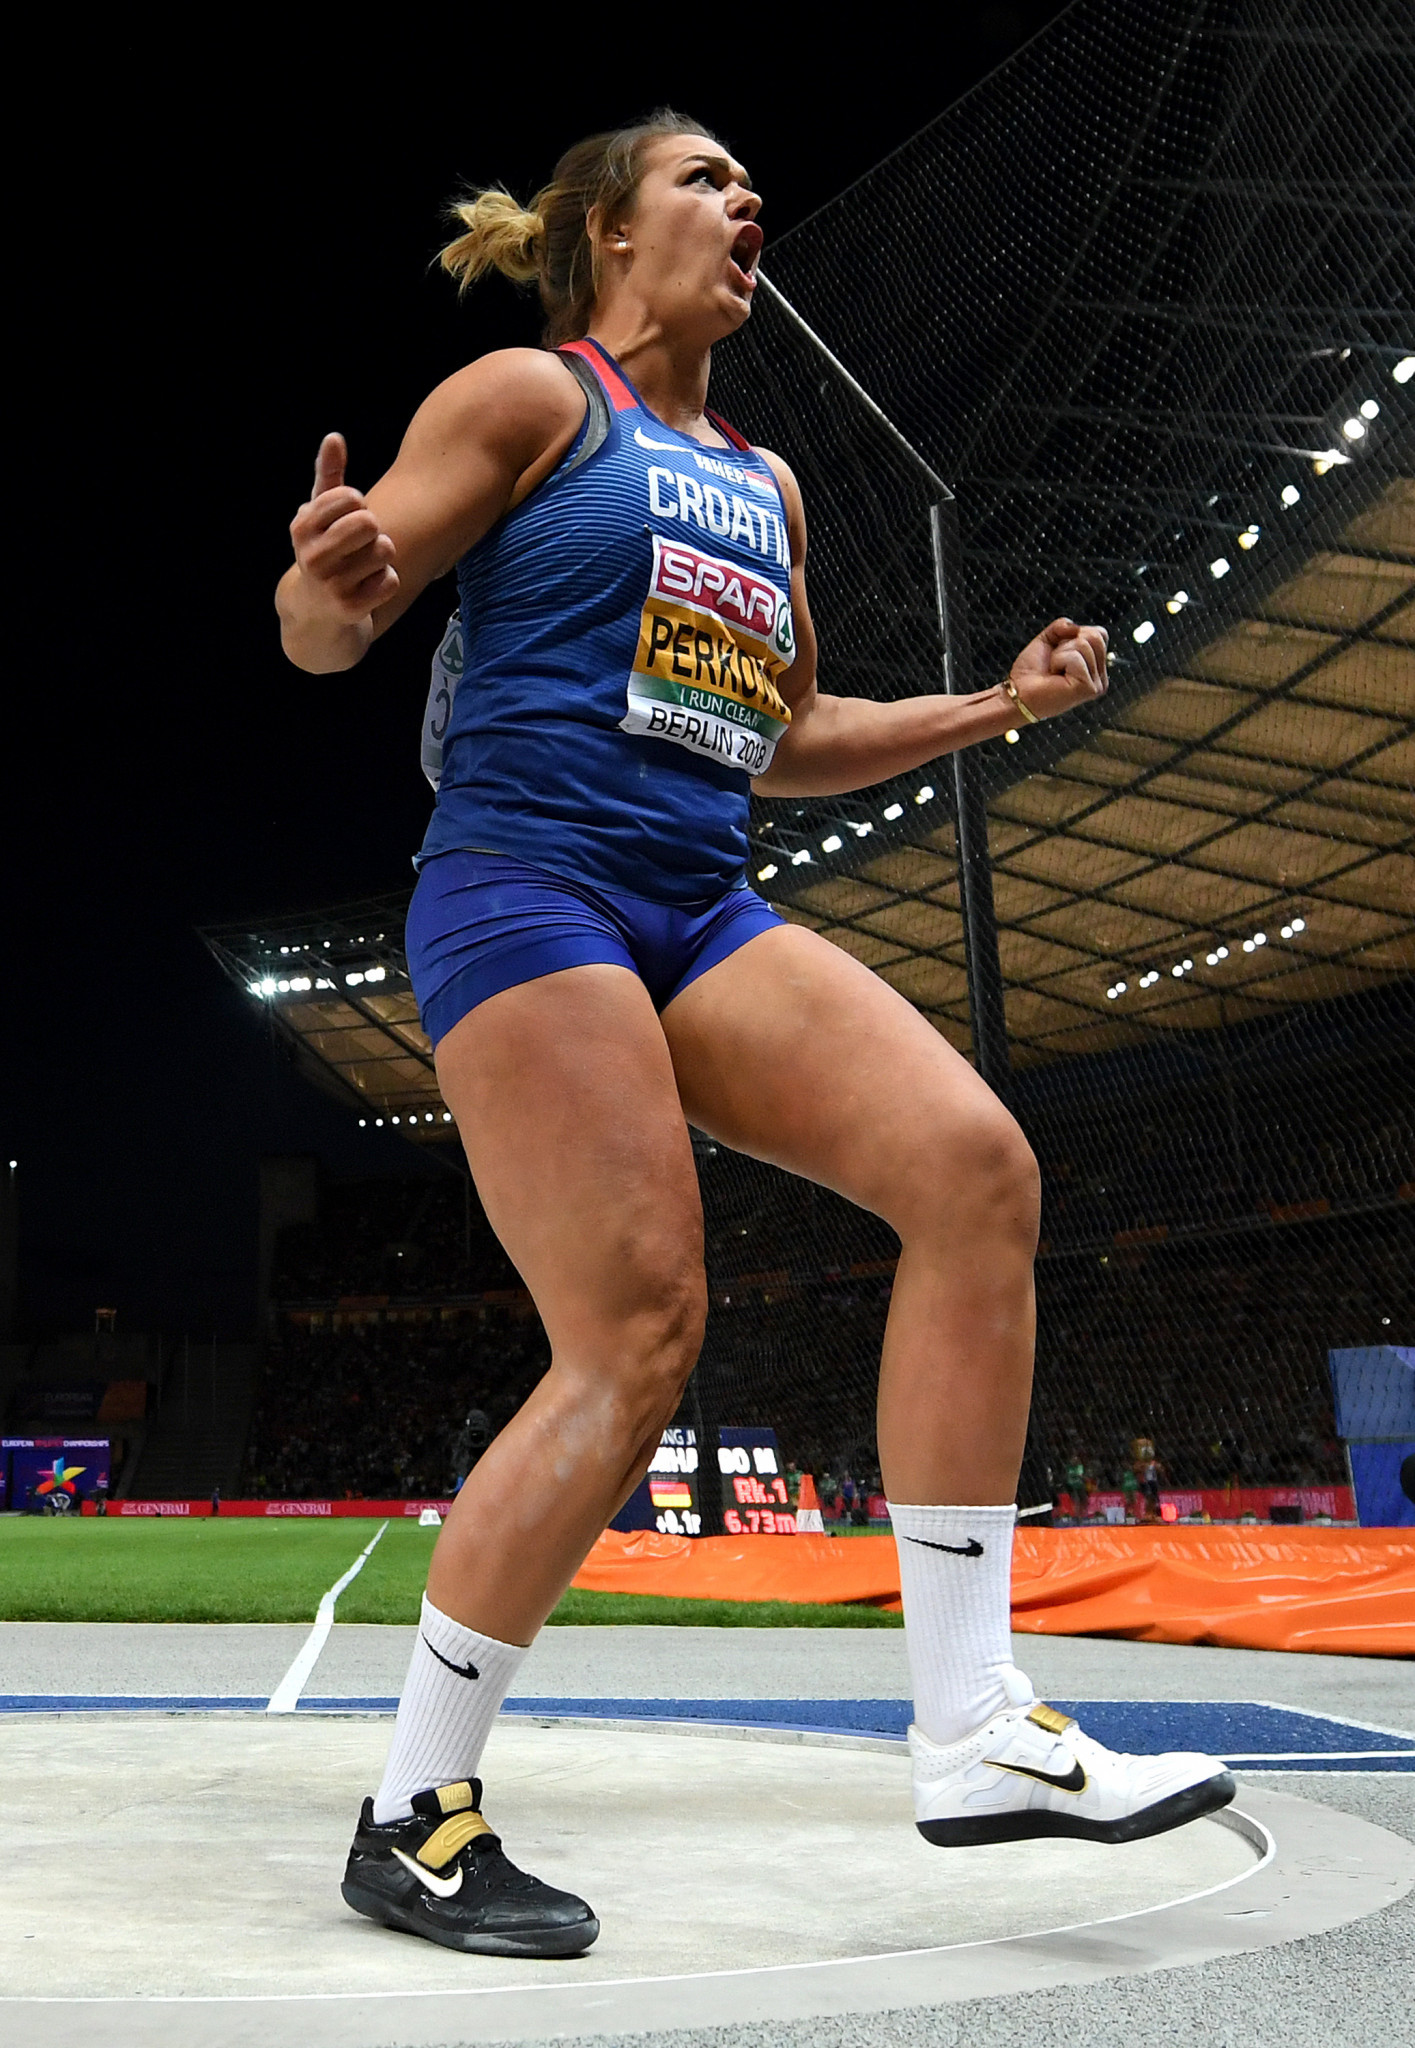 Croatia's Sandra Perkovic reacts after a fifth round discus throw that made her the only athlete to have won five European titles in the same event ©Getty Images